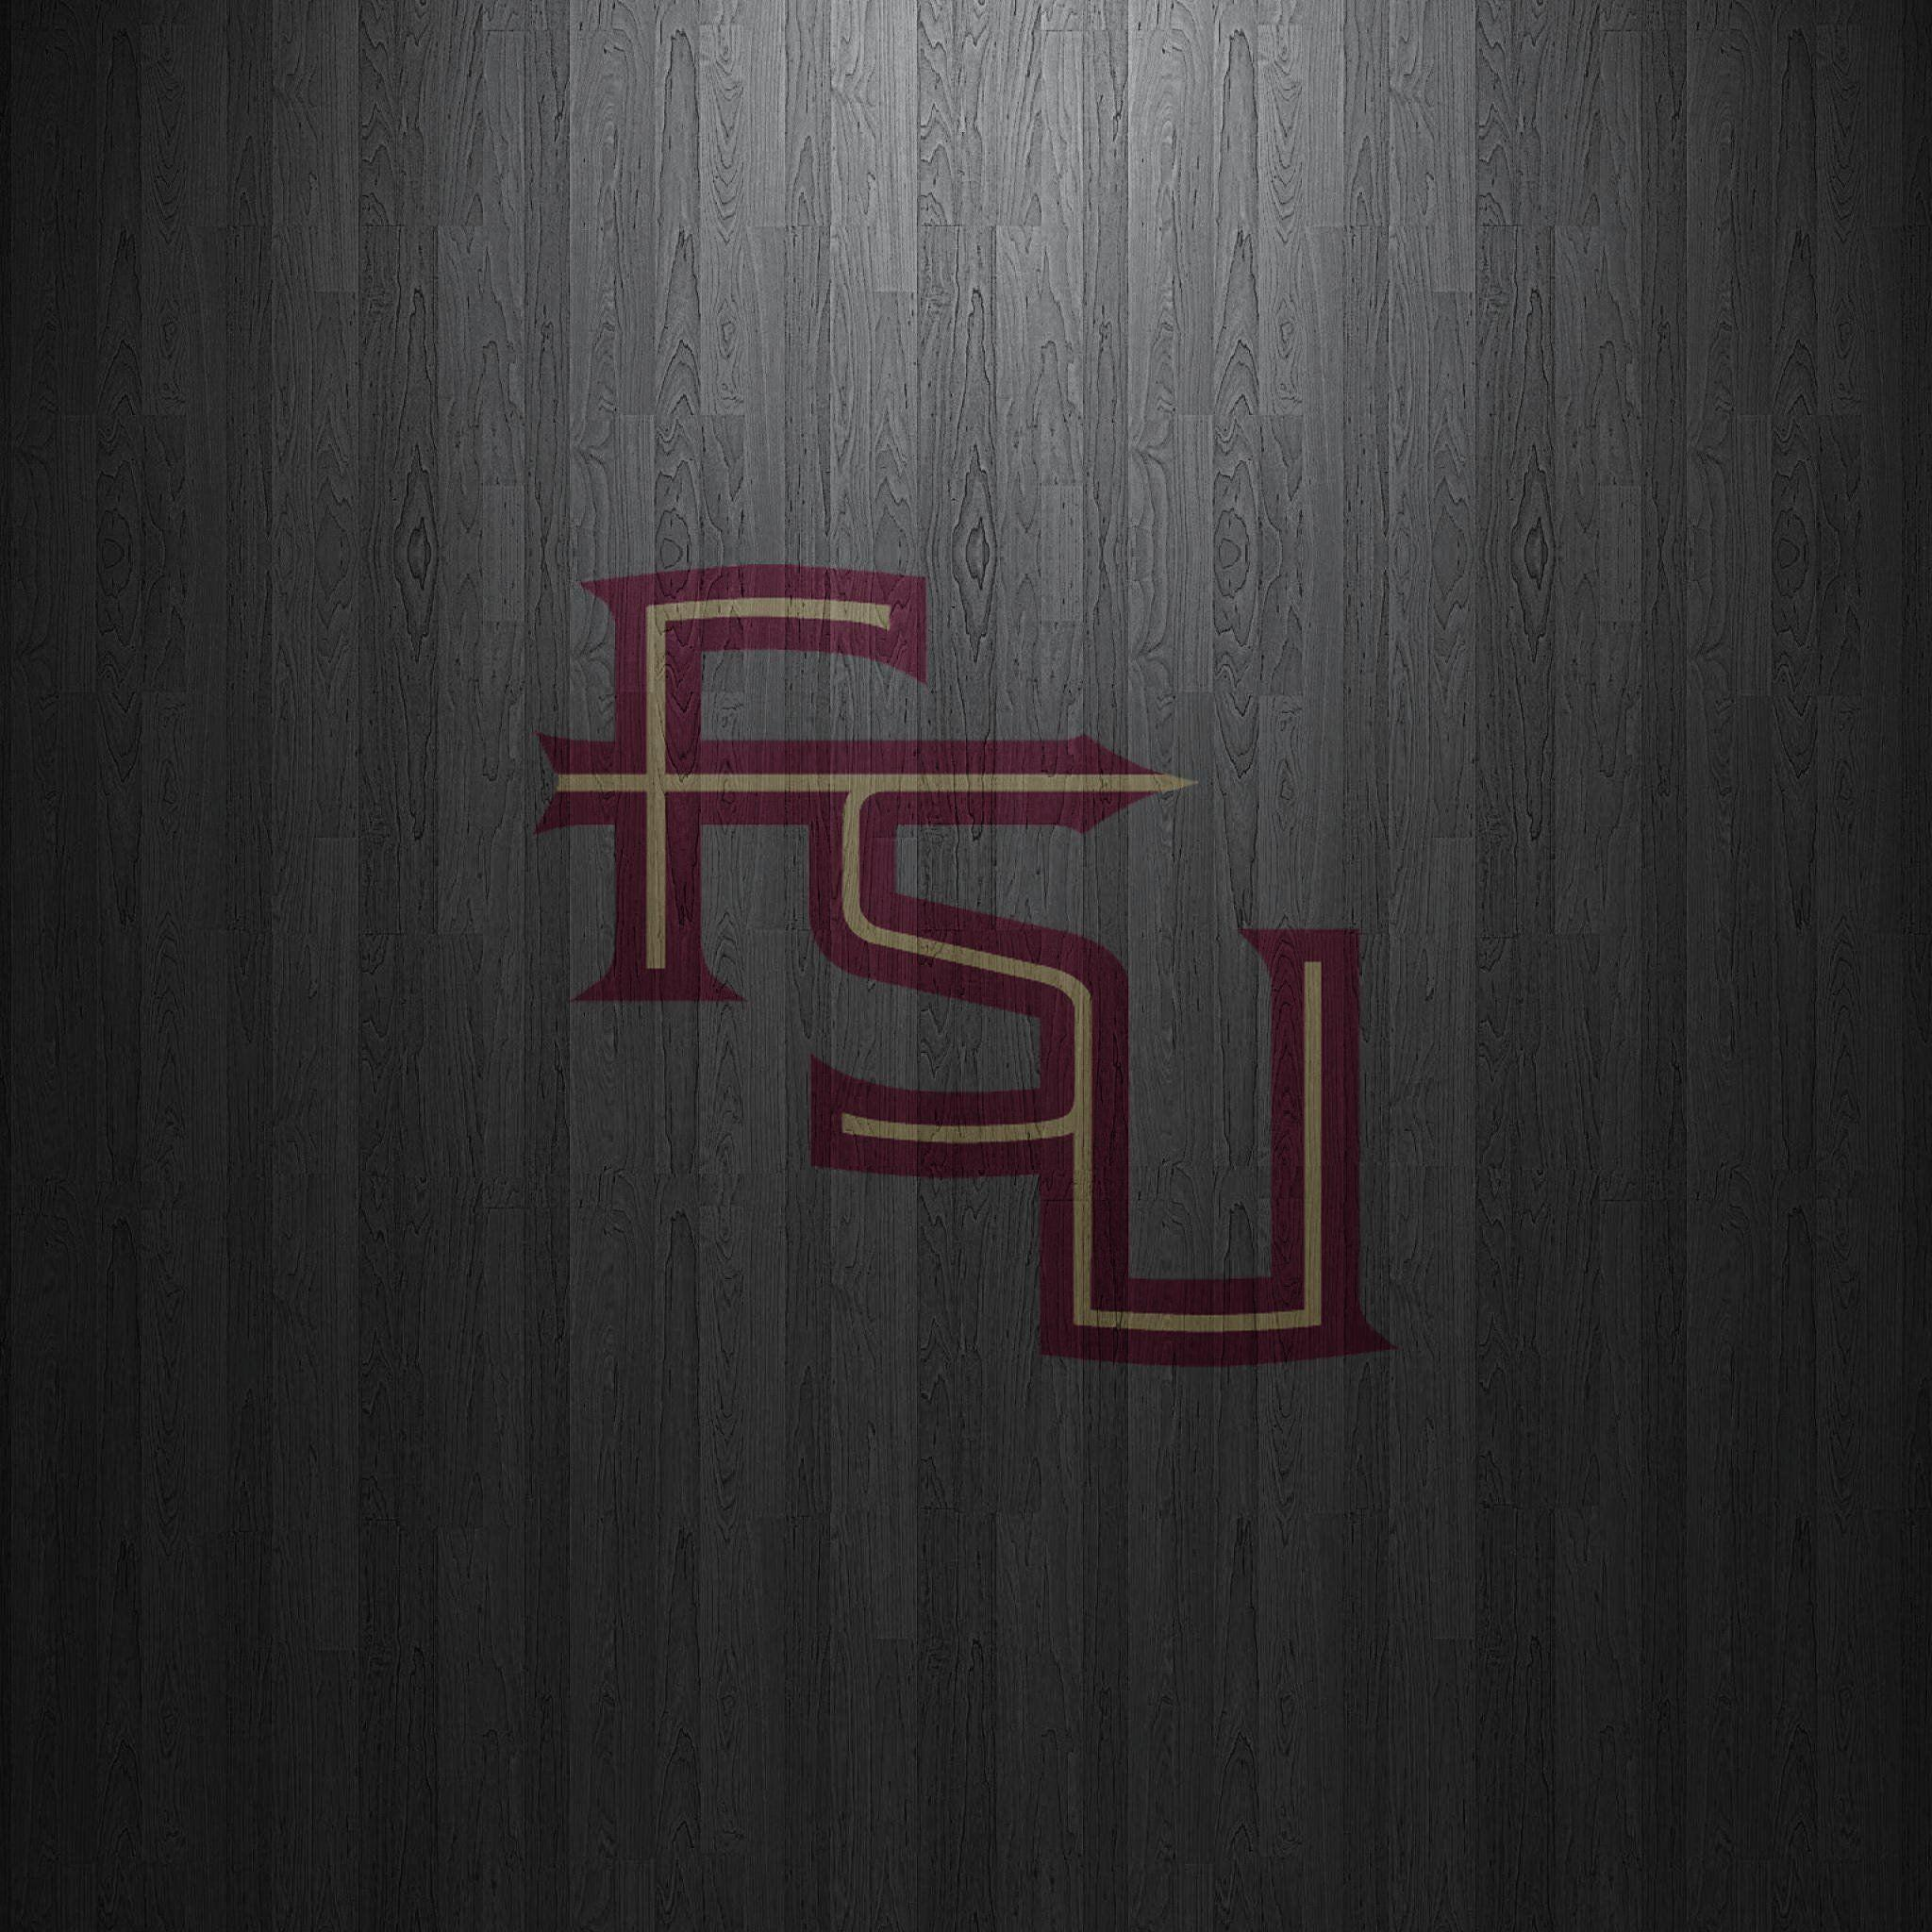 Fsu Football Wallpaper: Florida State University Wallpapers